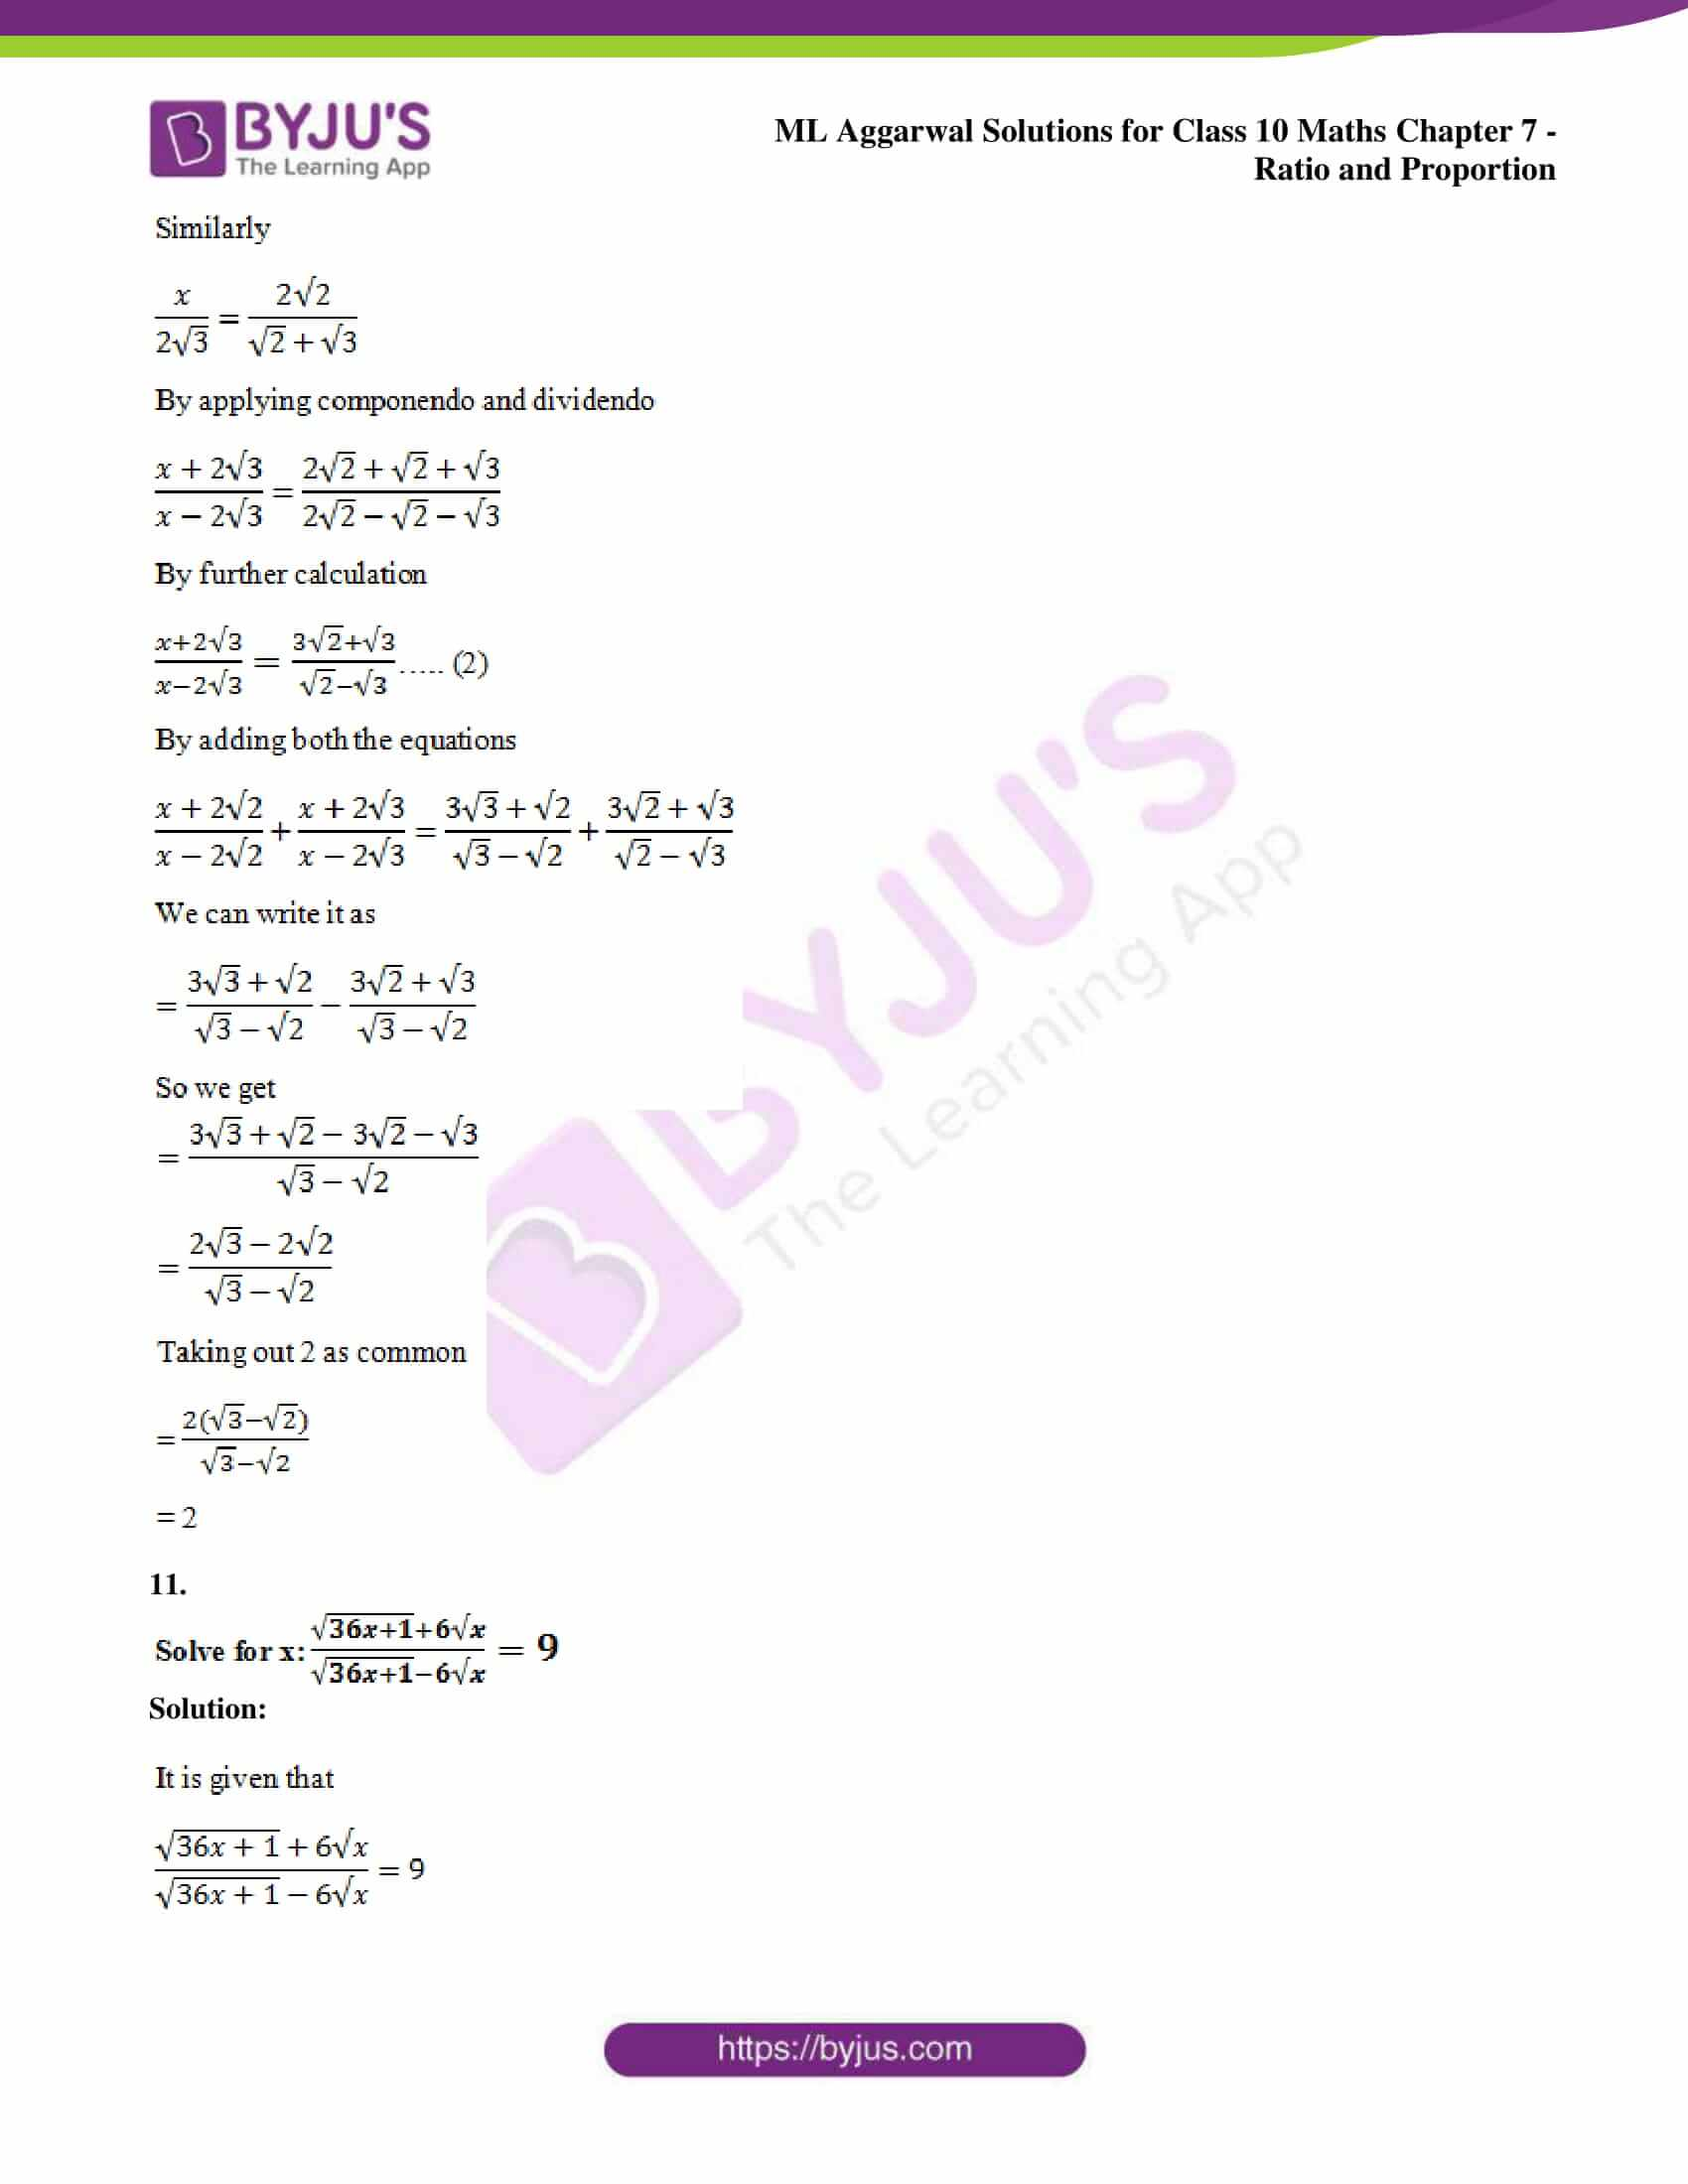 ml aggarwal solutions for class 10 maths chapter 7 53